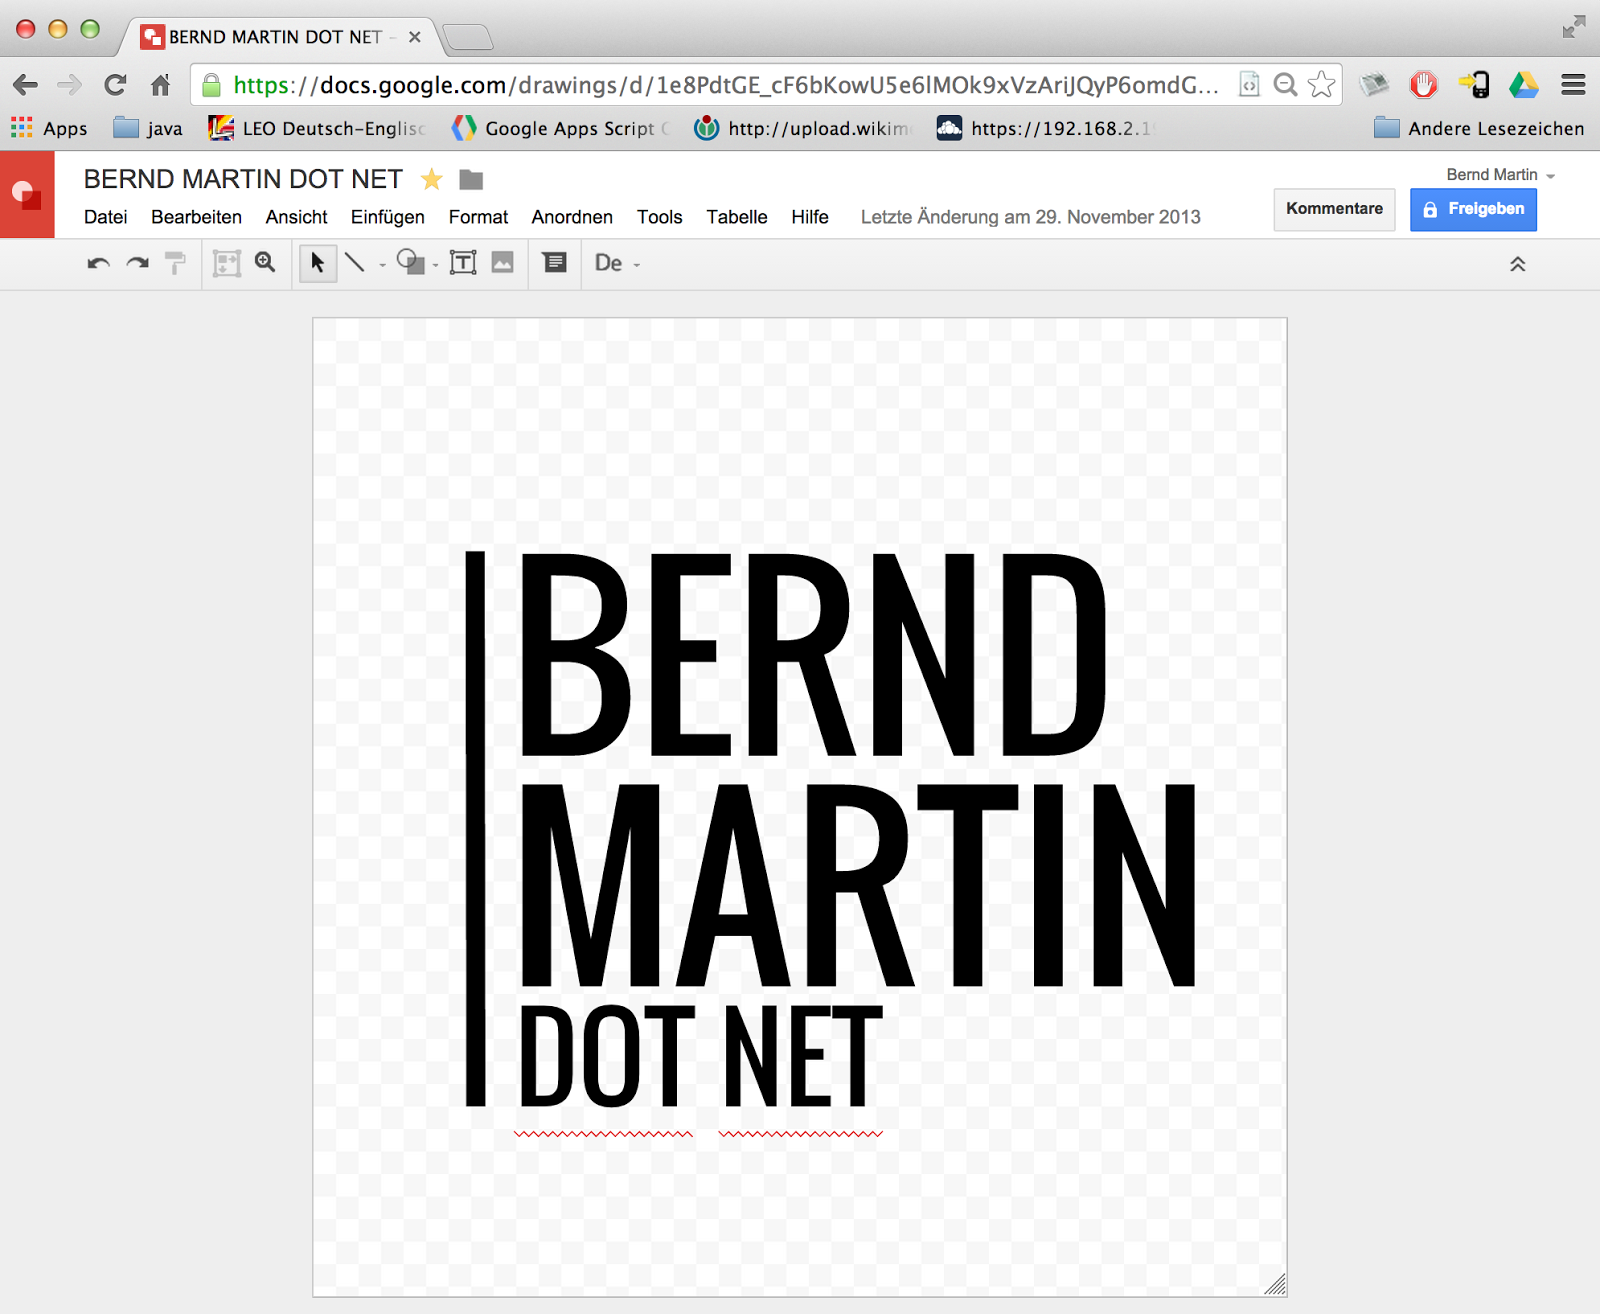 Bernd Martin Dot Net created with google drive